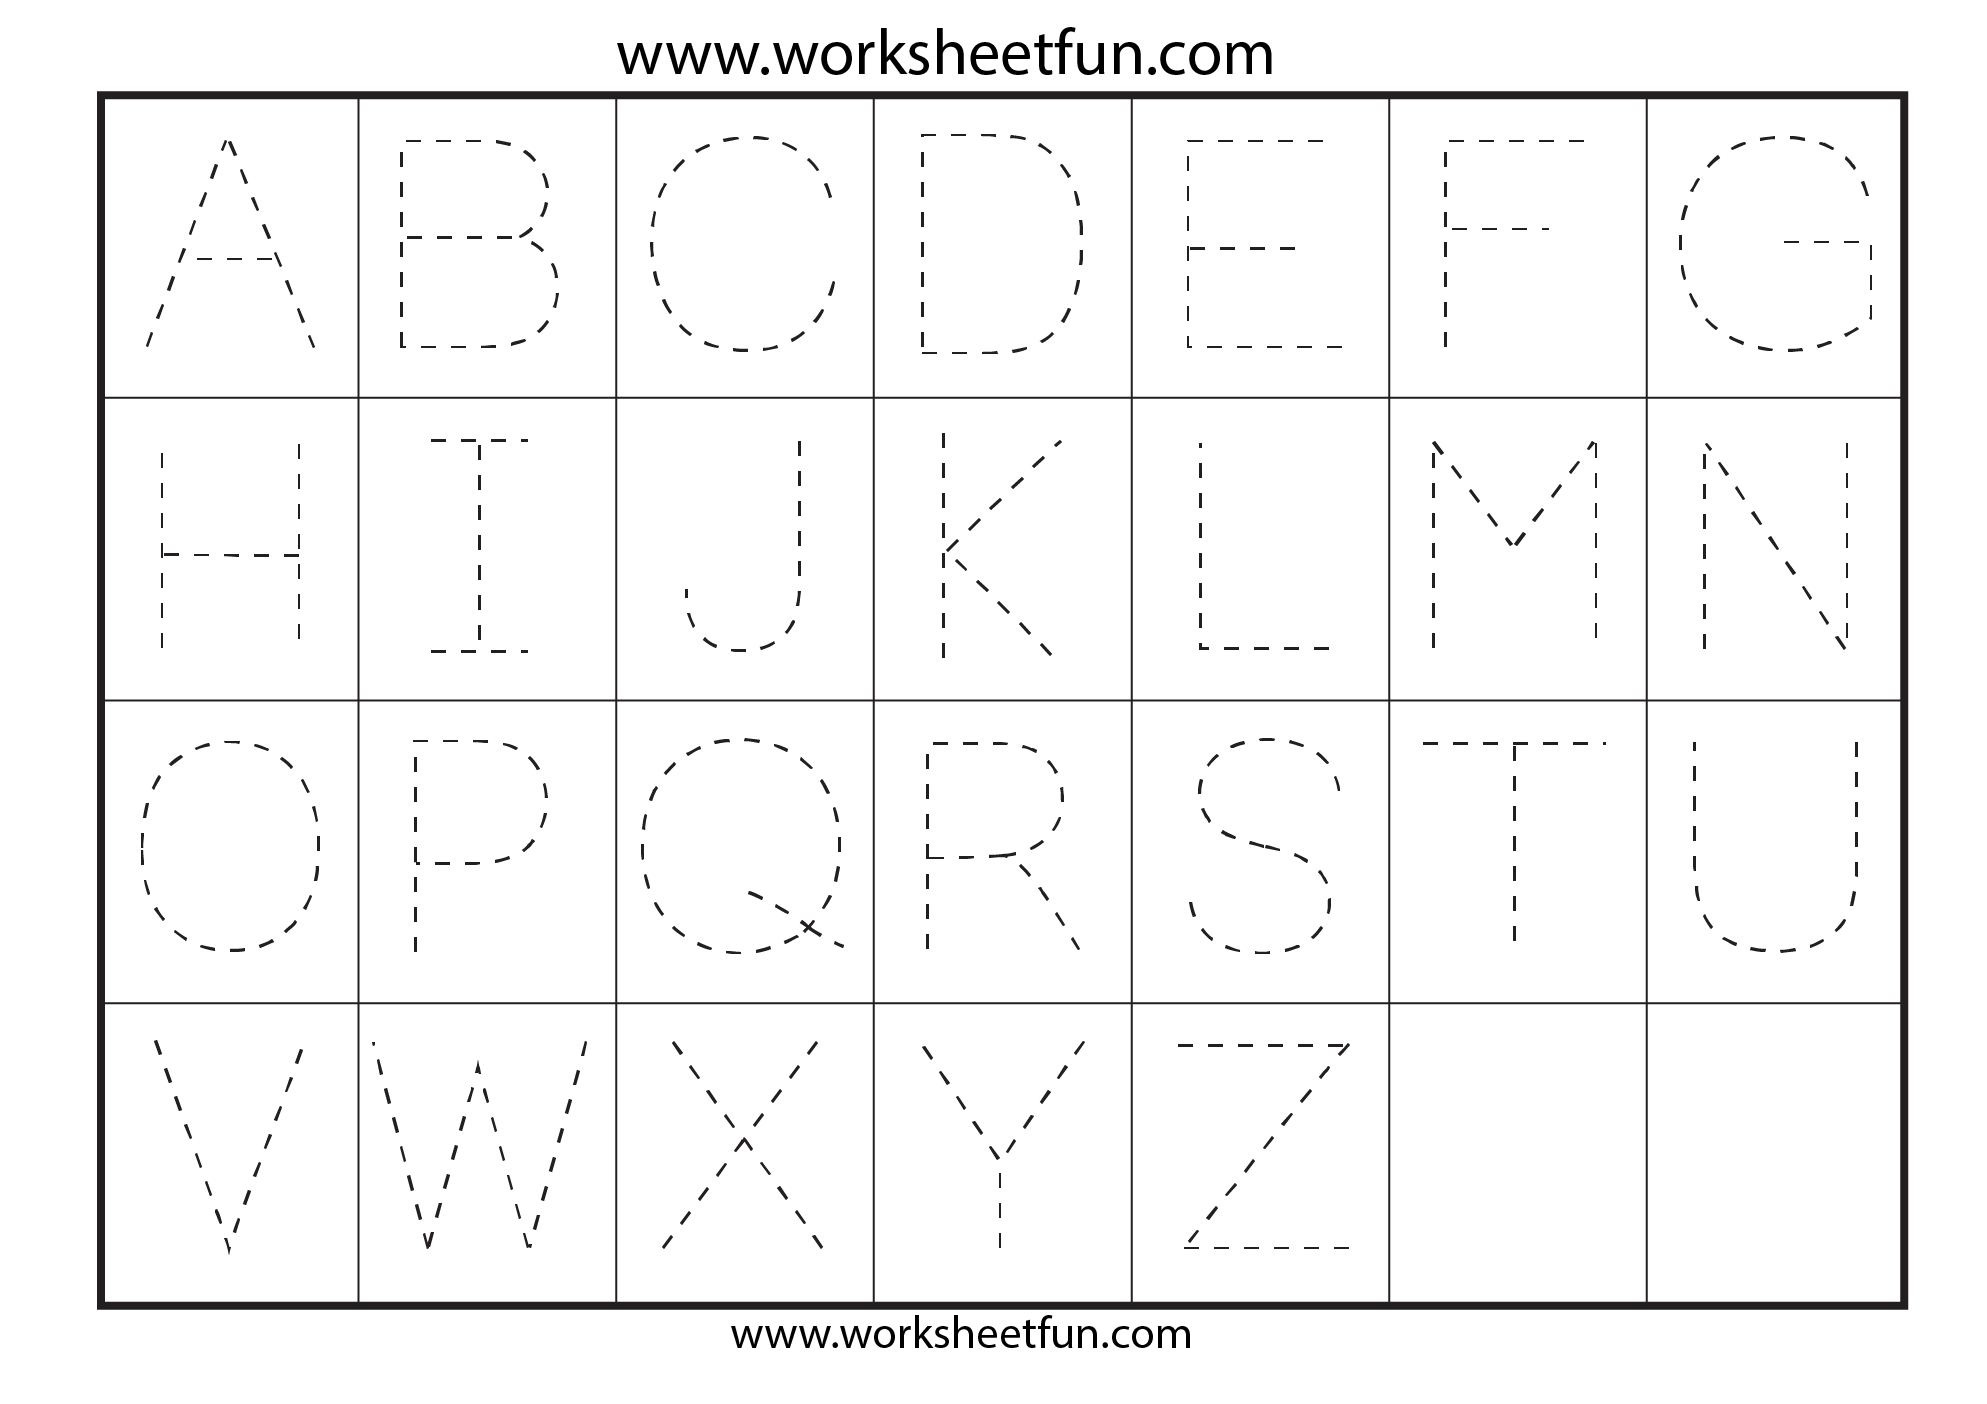 Worksheets Pre K Alphabet Tracing Worksheets alphabets tracing worksheets davezan